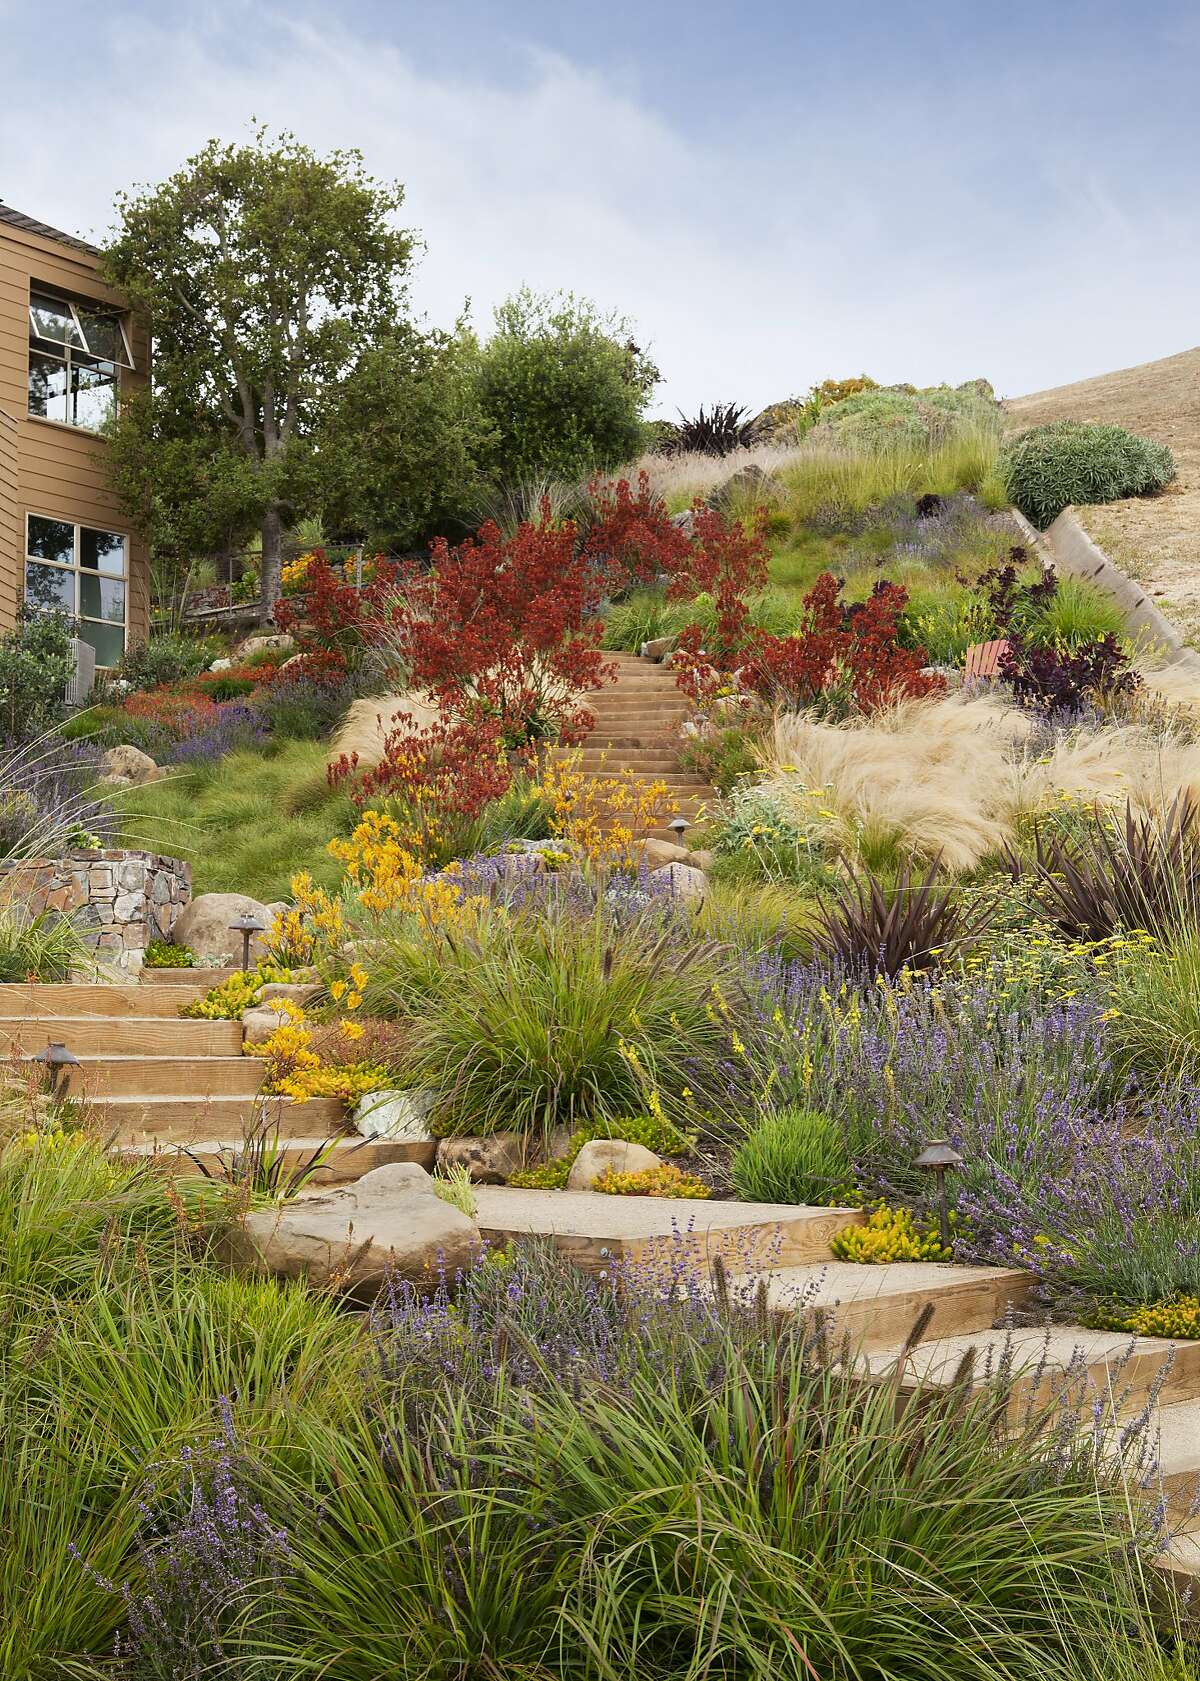 The grass swale weaves through the masses of plantings and diverts water away from the house. Storm water is then slowed by the Carex and allows more water to percolate into the soil and reduce impact on storm sewer system. Credit: Michele Le Willson Photography